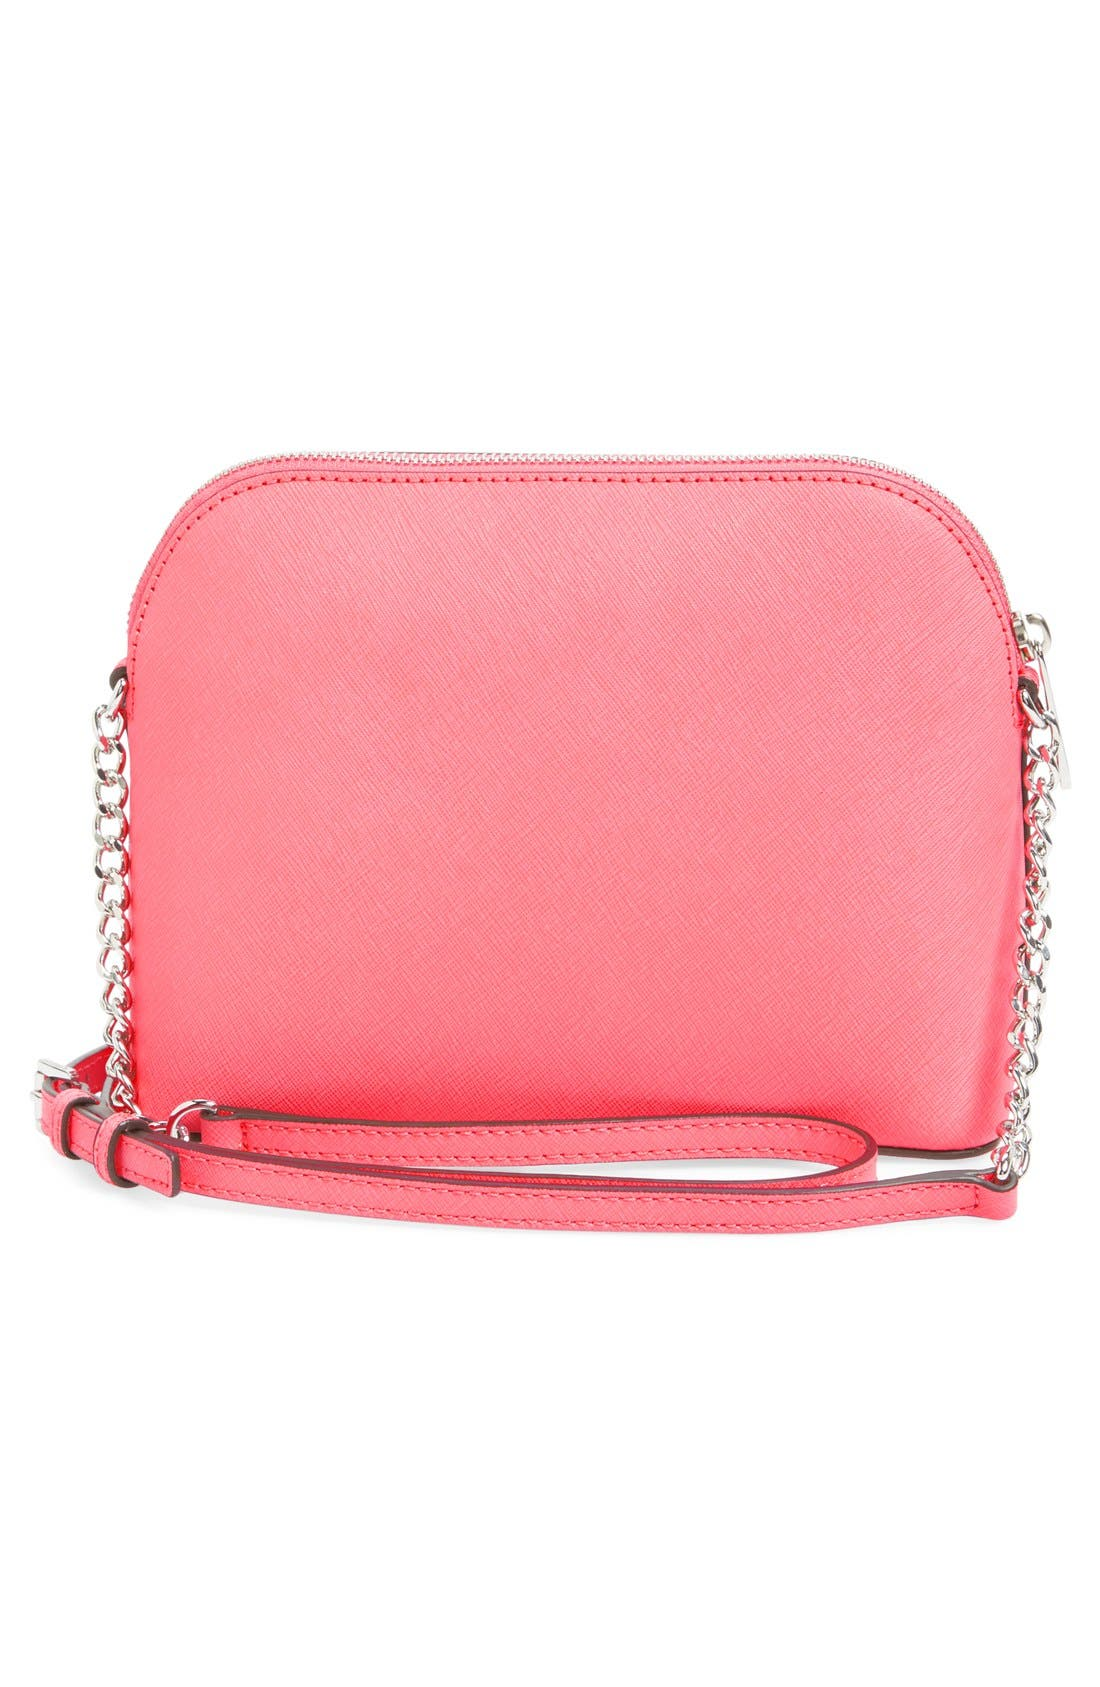 ,                             'Large Cindy' Saffiano Leather Crossbody Bag,                             Alternate thumbnail 25, color,                             950